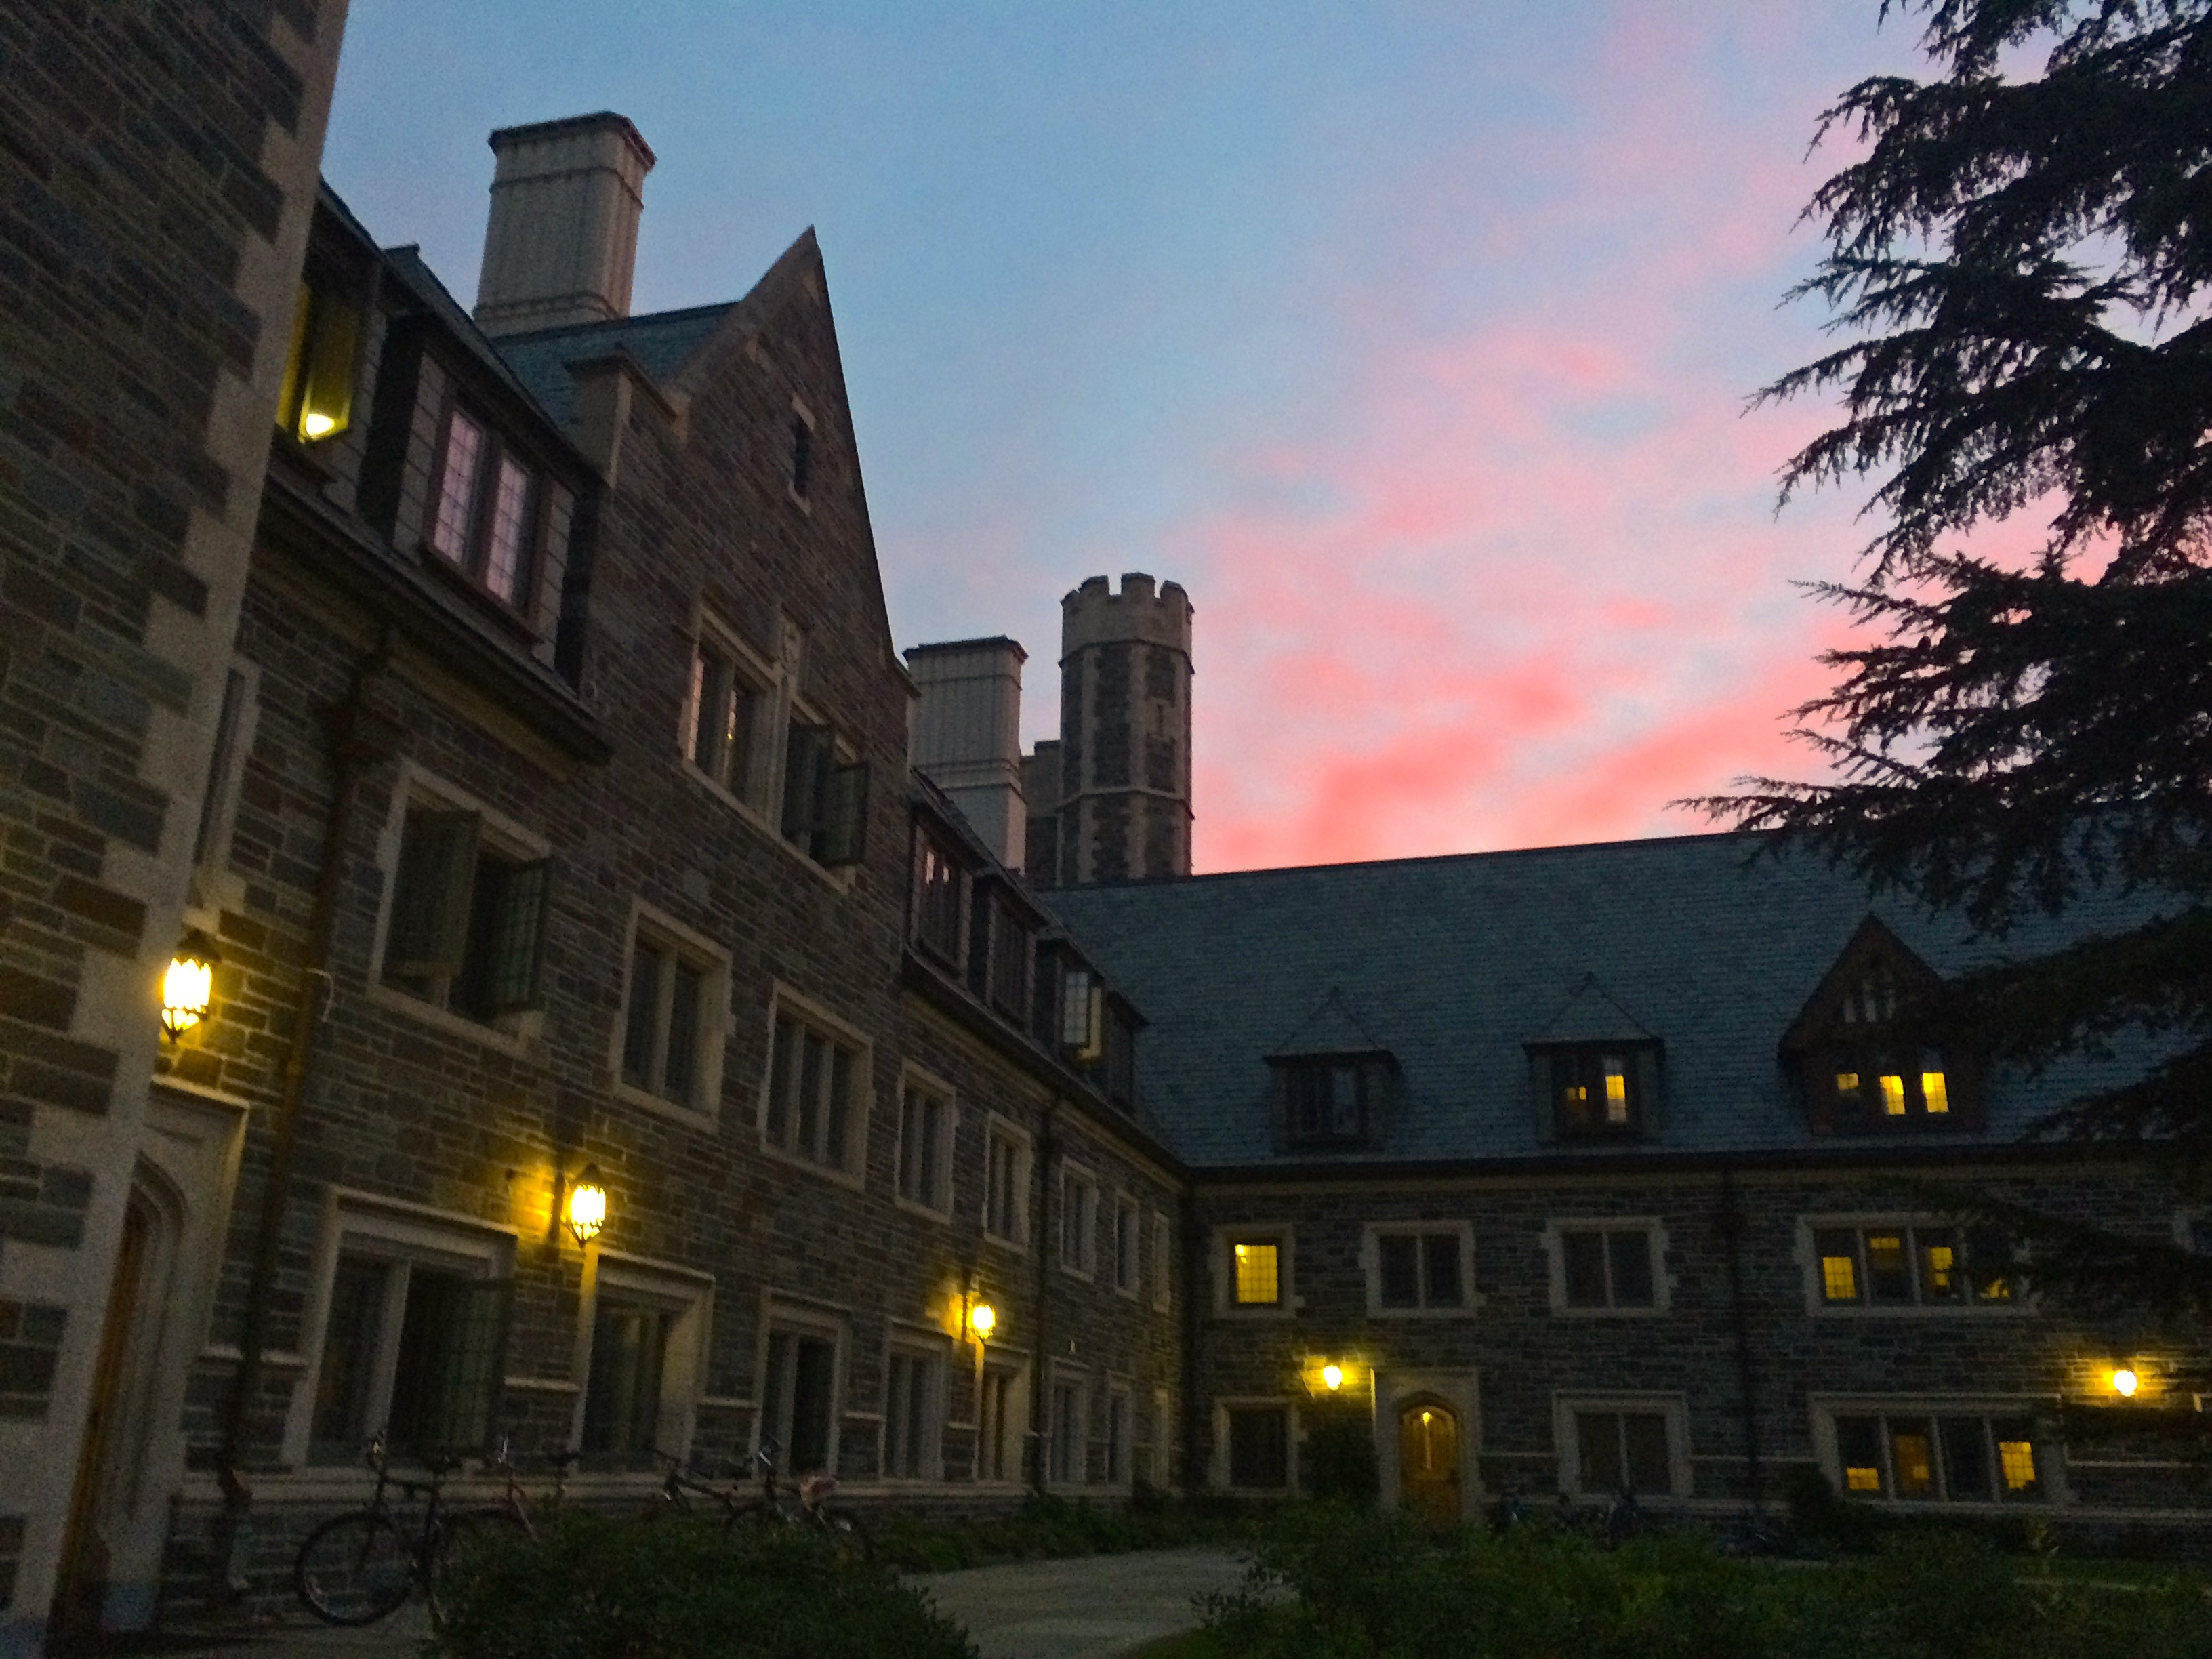 Sunset over Whitman College